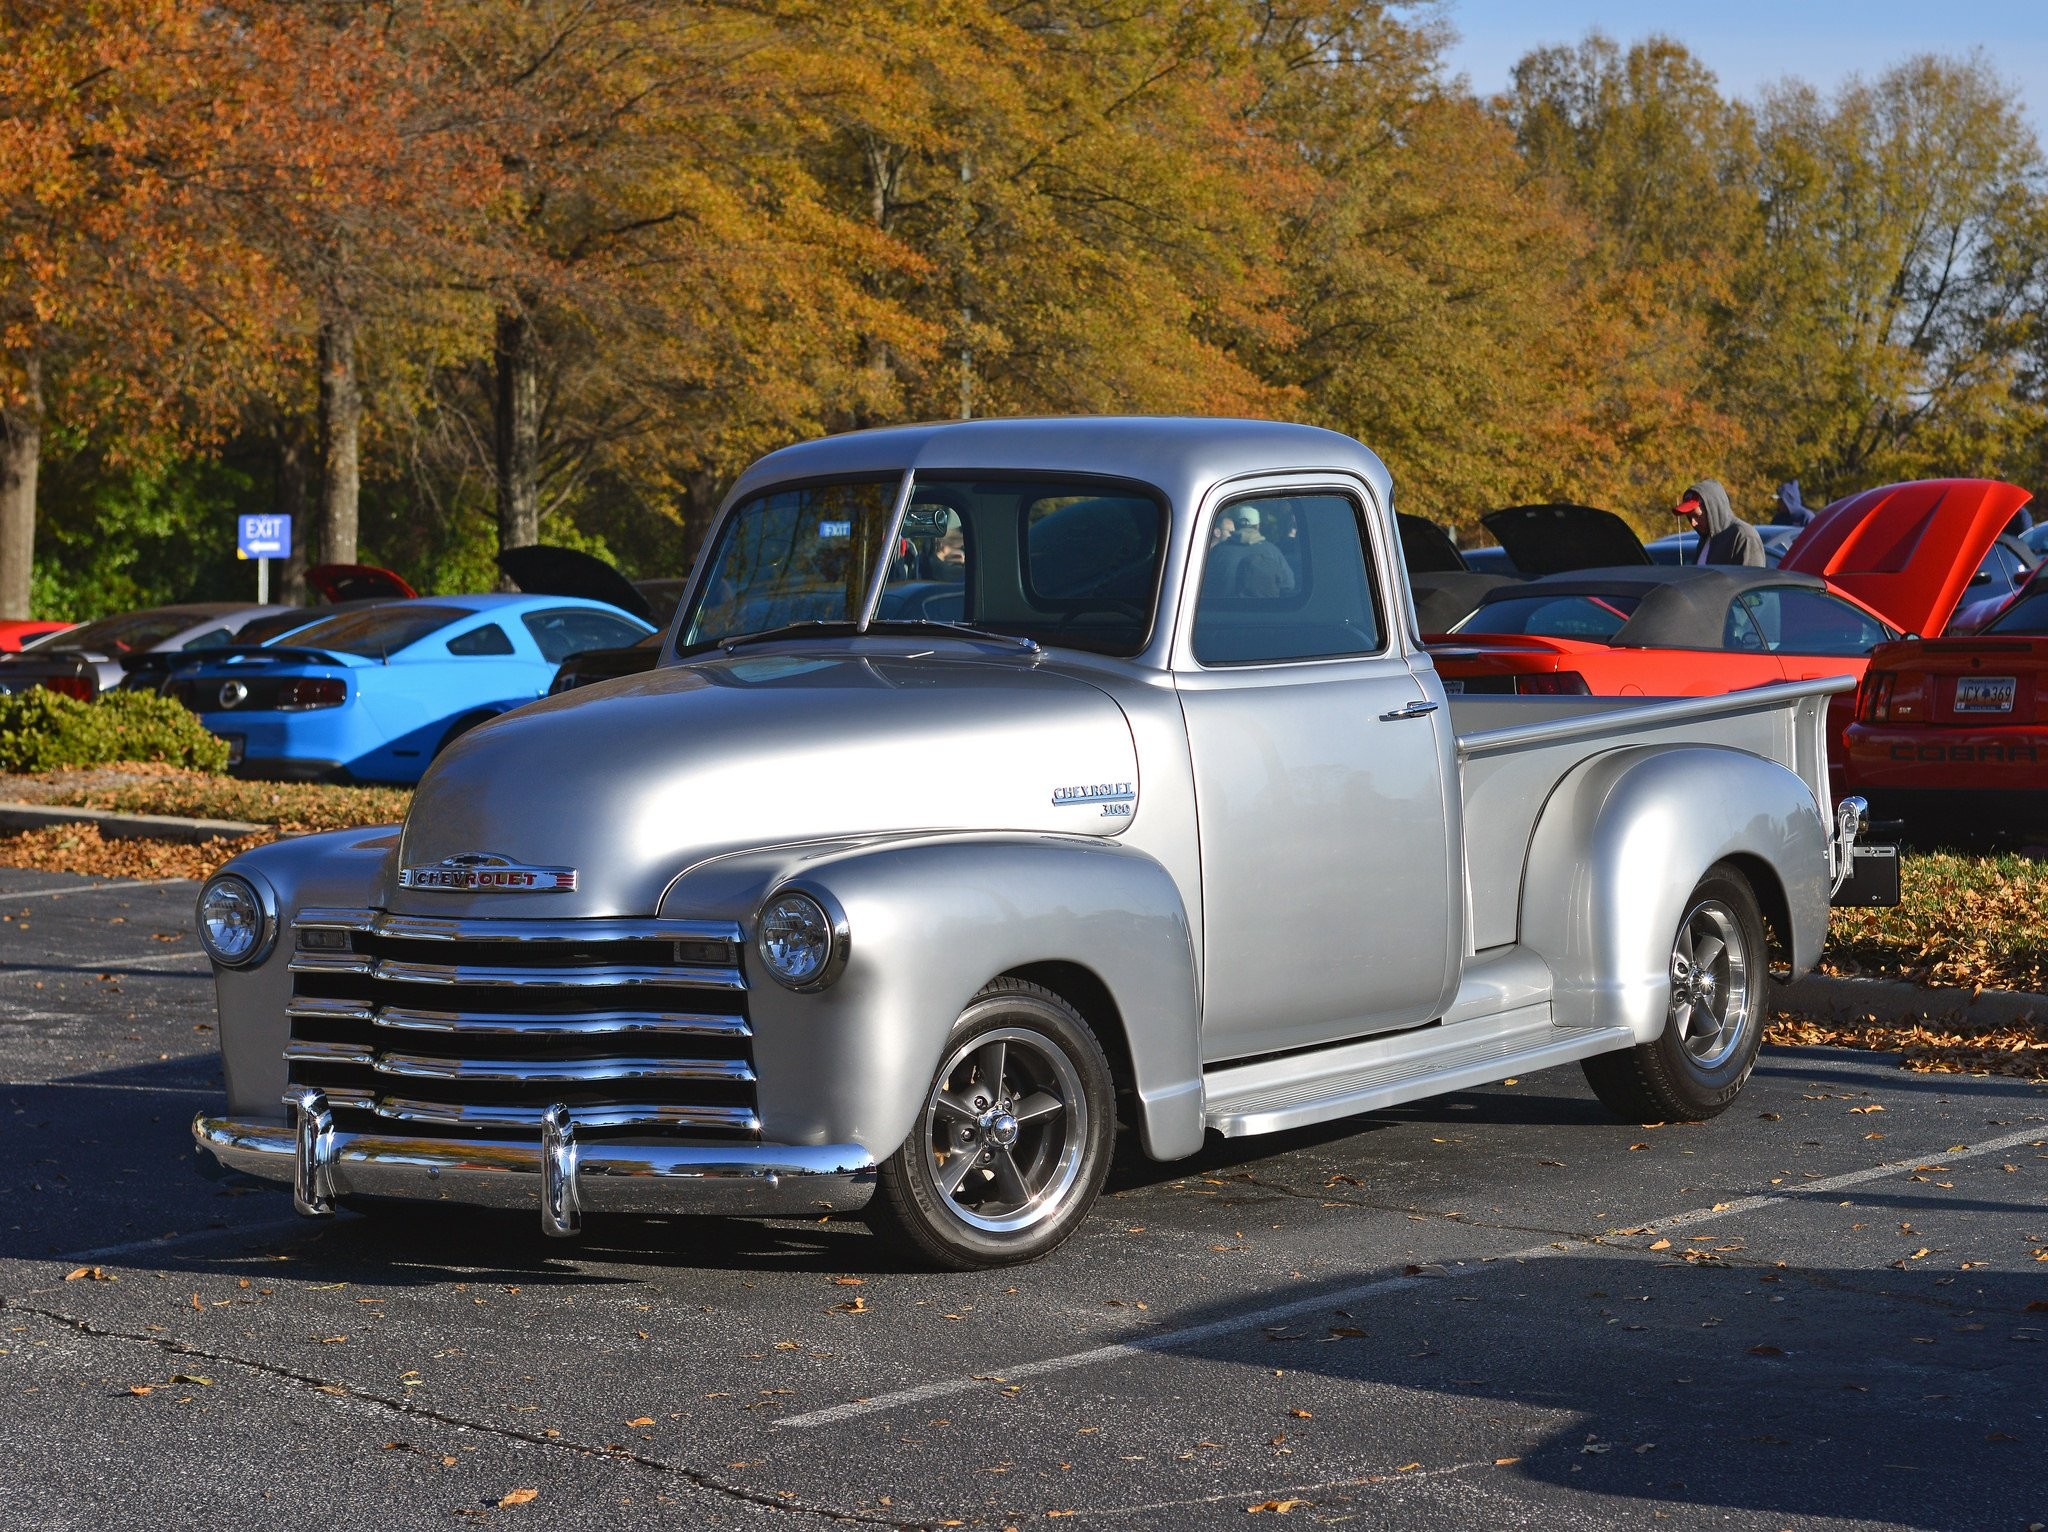 2048x1532 Chevrolet chevy old classic custom cars truck Pickup wallpaper |   | 678458 | WallpaperUP